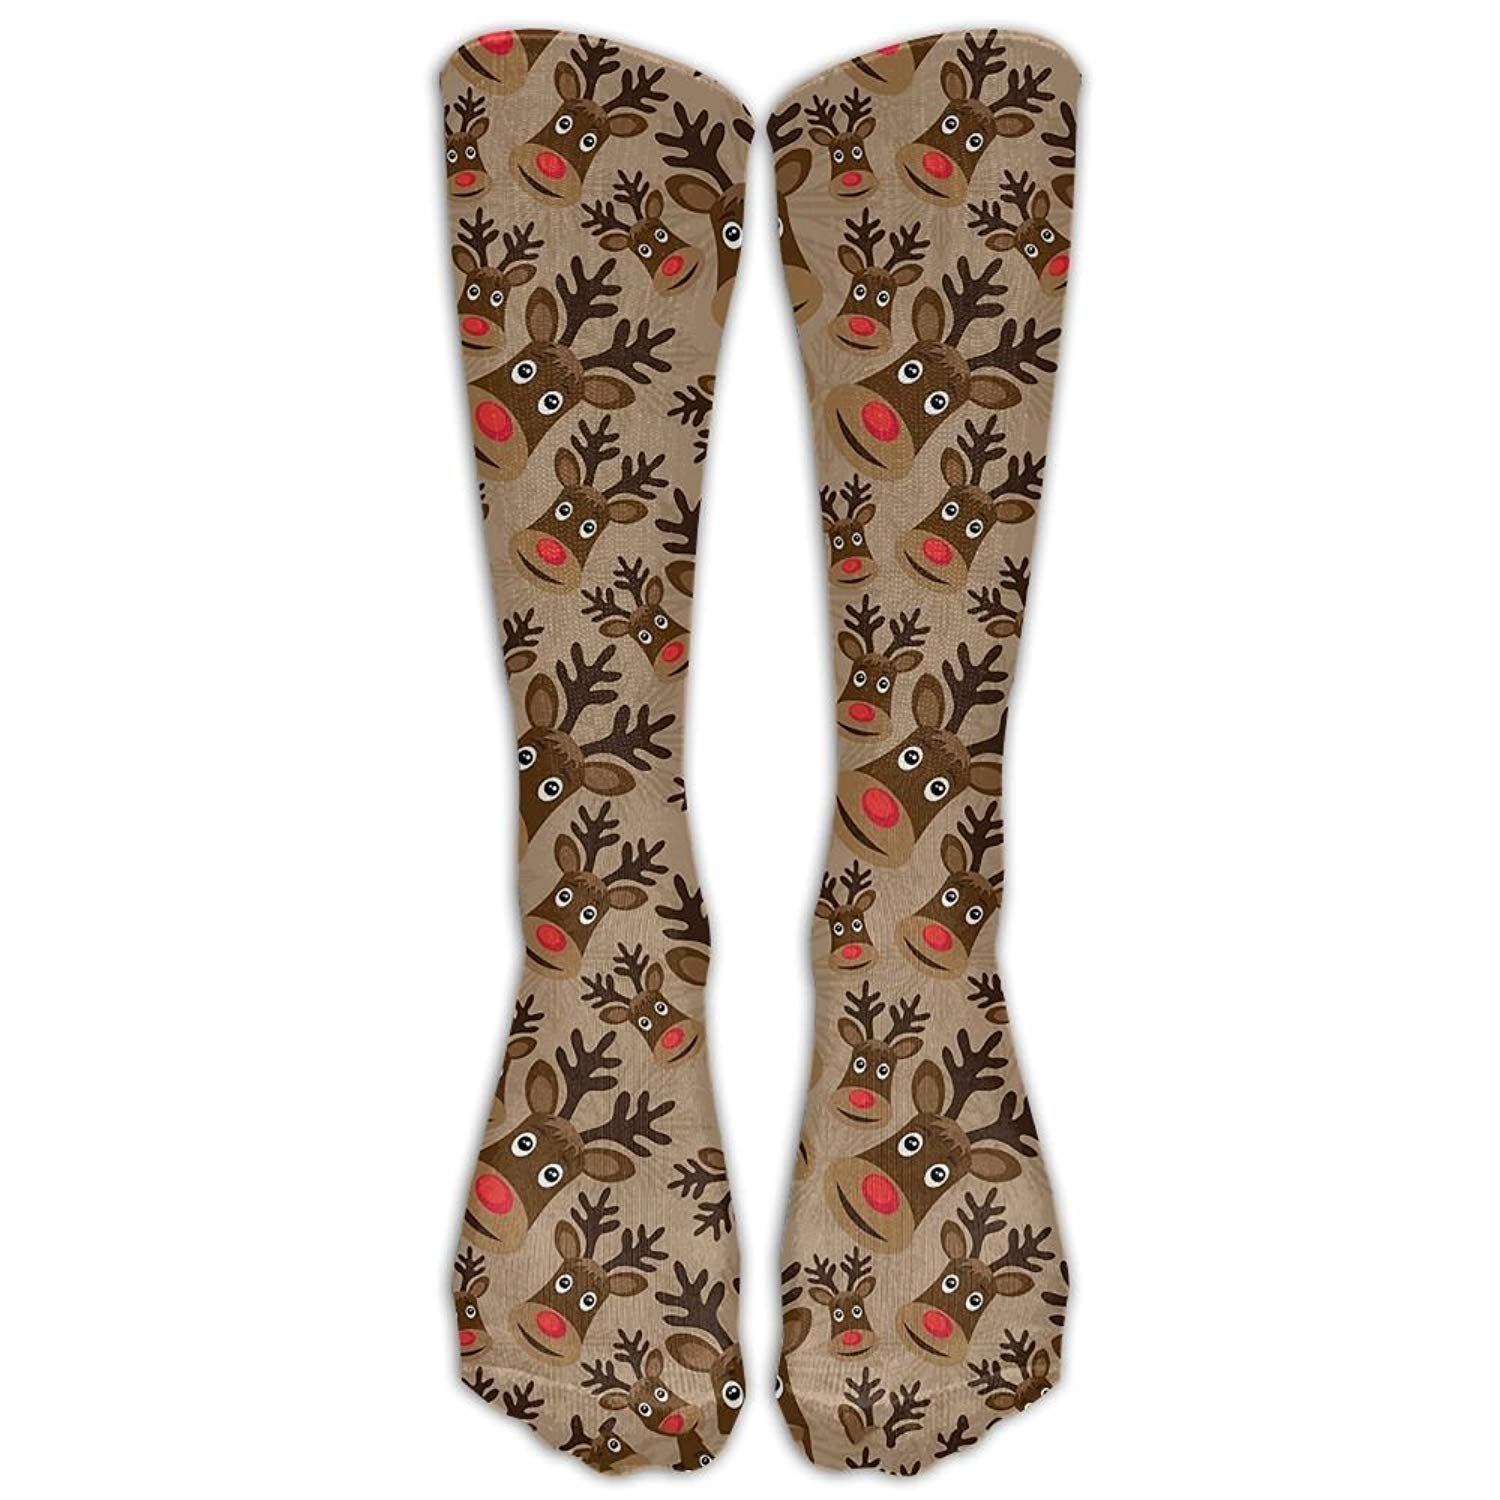 Womens Reindeer Printed Sock Over Knee High Boots Girls Long Socks